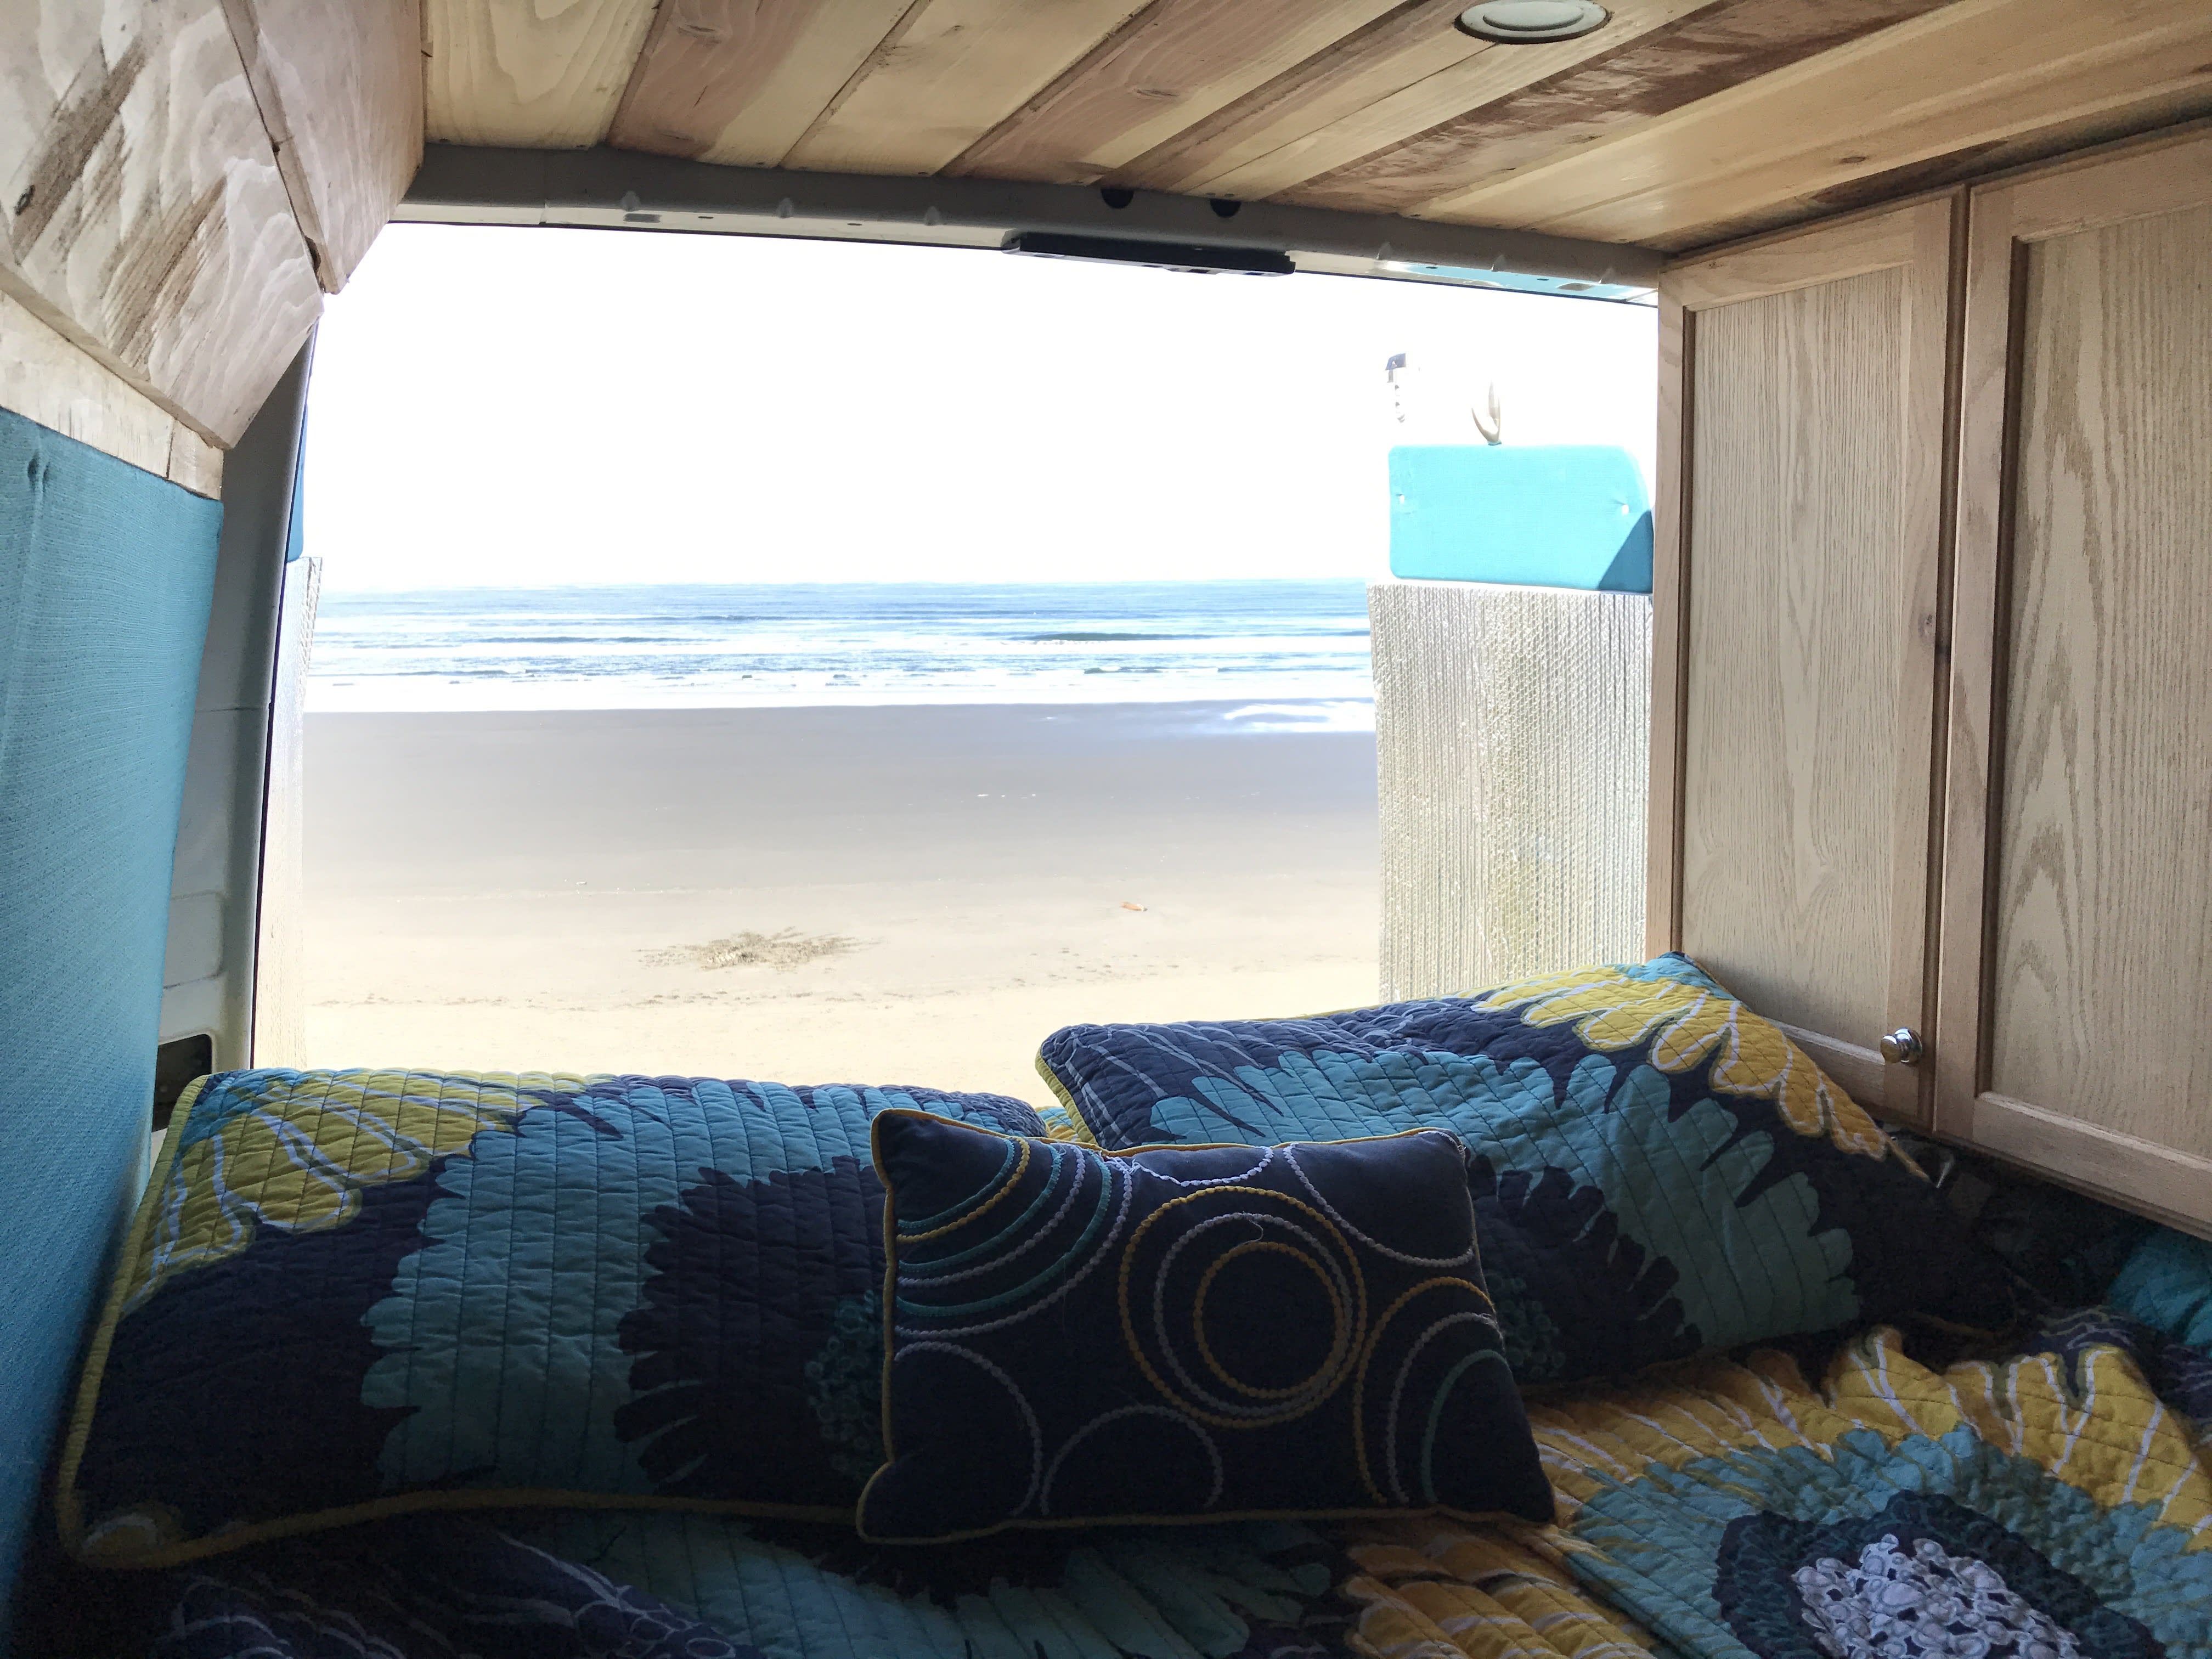 Room with a view, Kalaloch Campground, Olympic National Park, WA.. Dodge Sprinter Van 2005